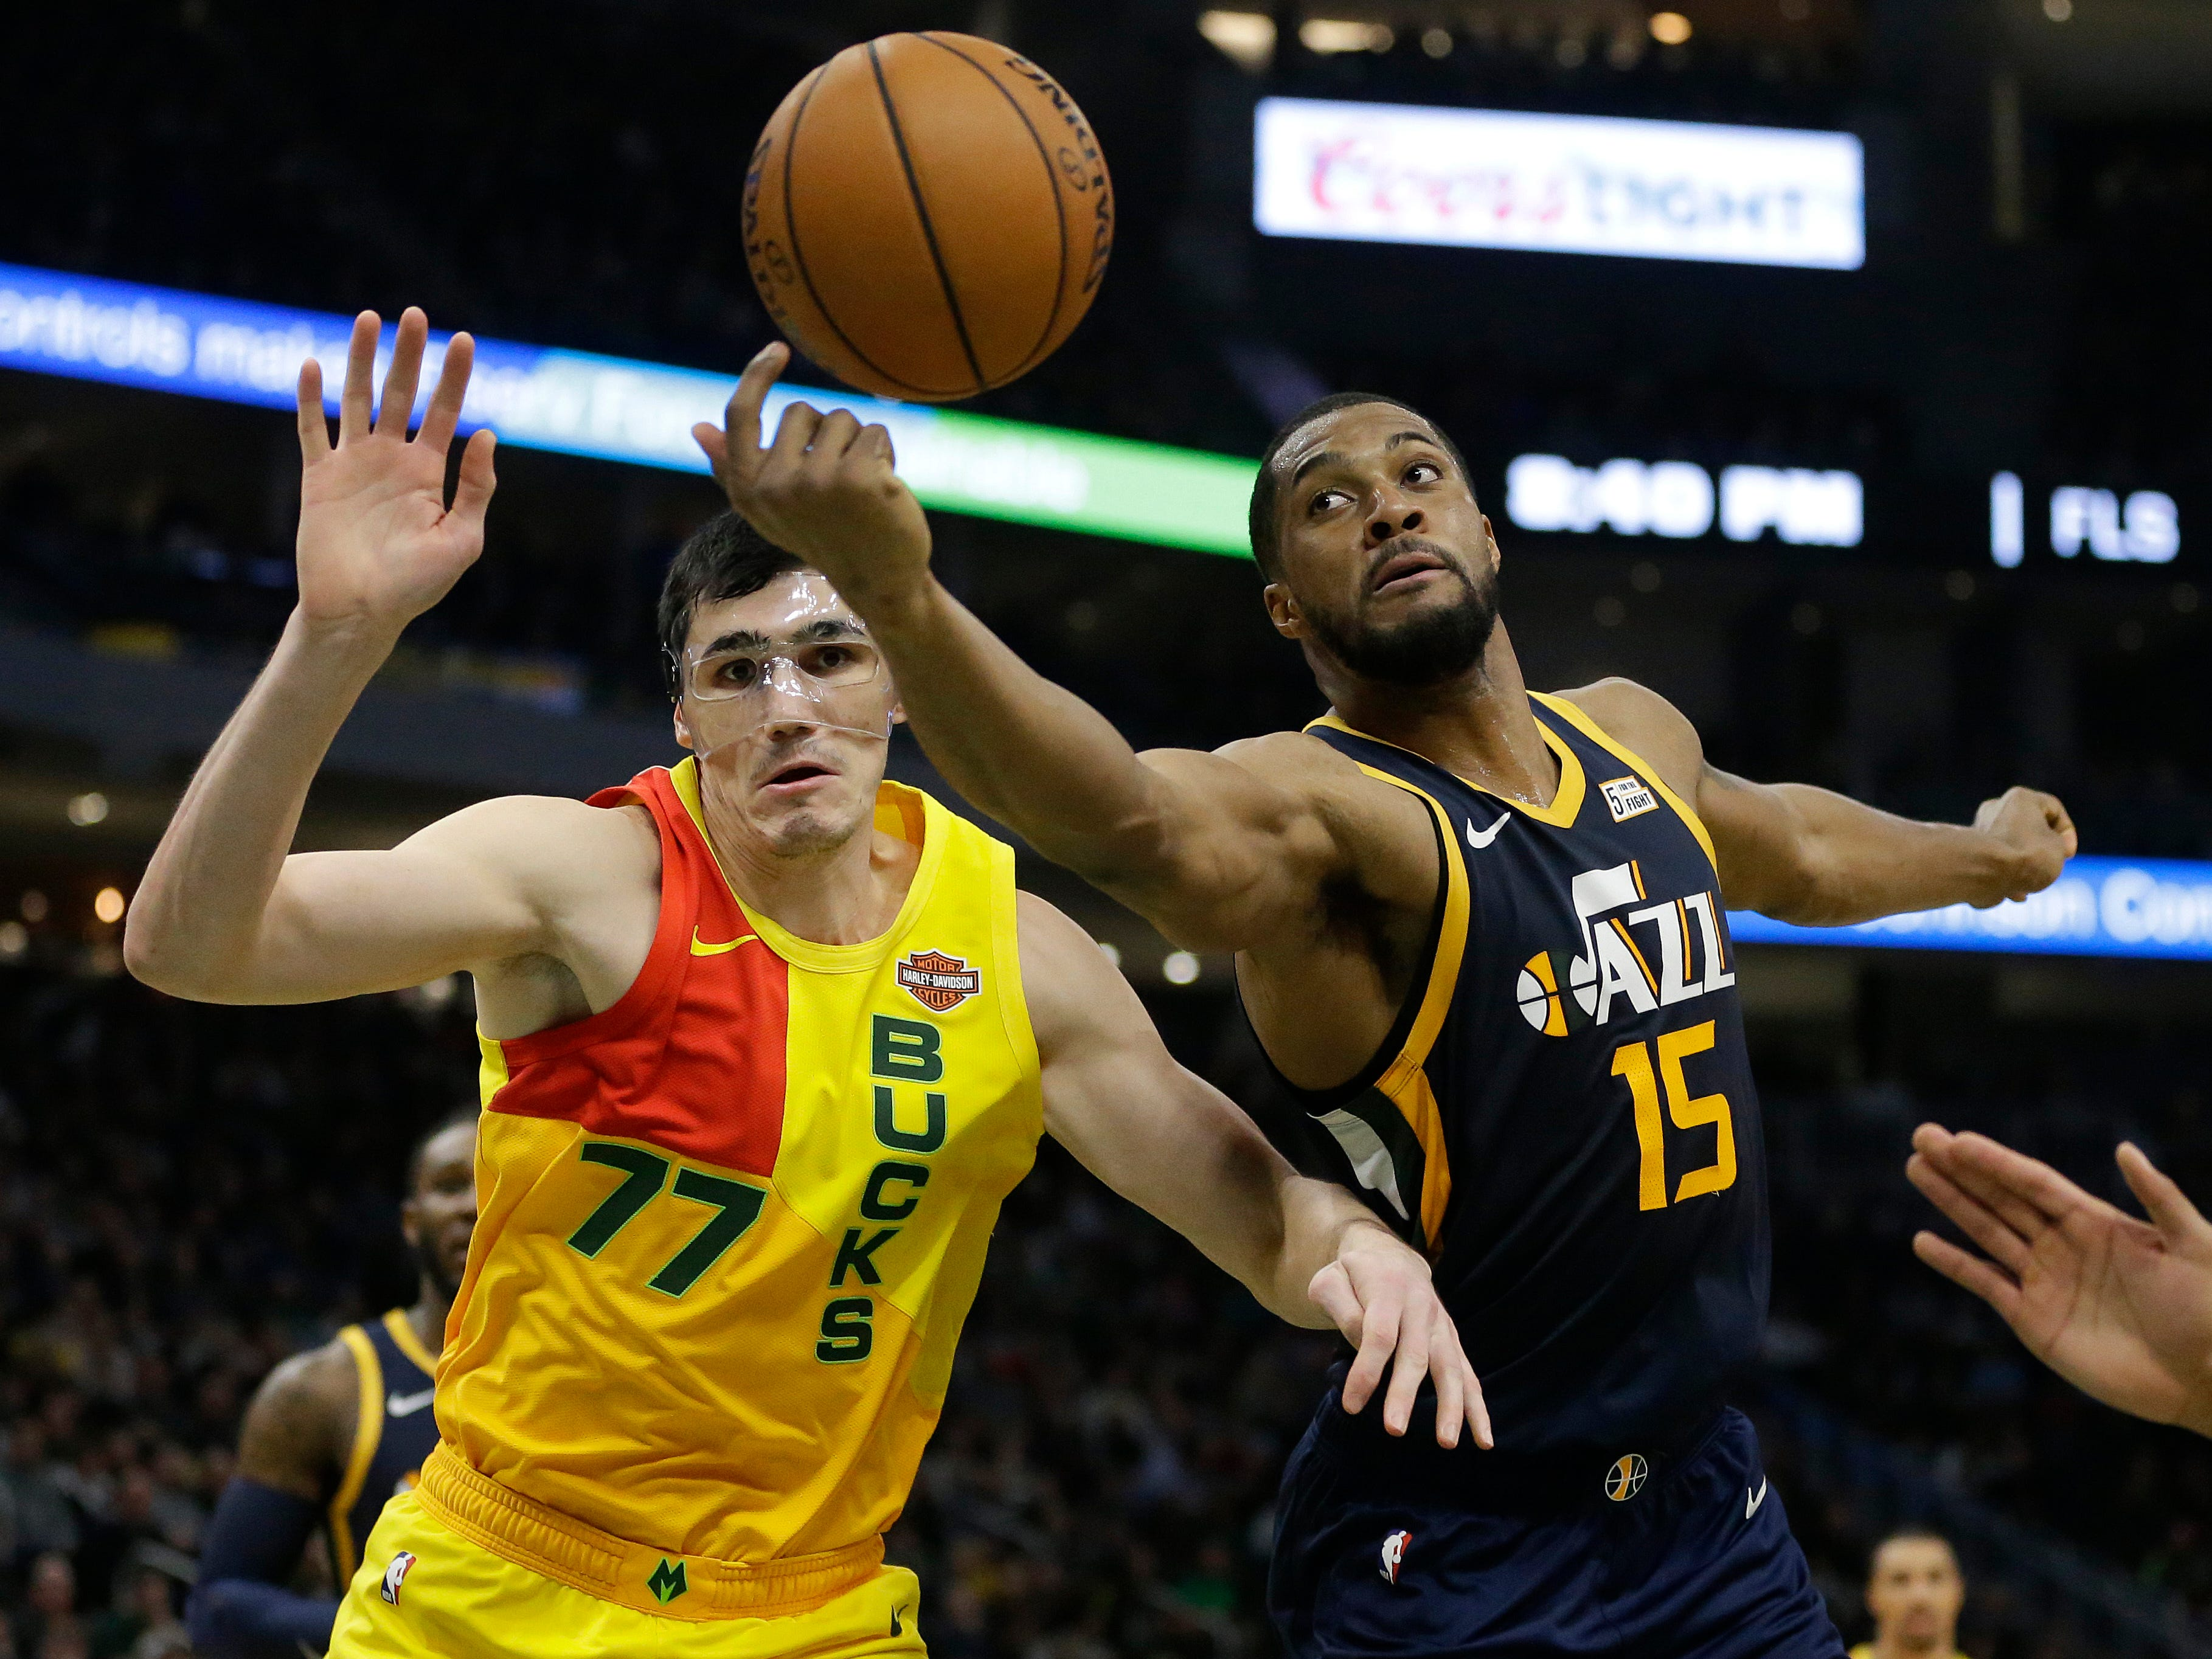 Ersan Ilyasova of the Bucks and Derrick Favors of the Jazz battle for a rebounds during the second half Monday.